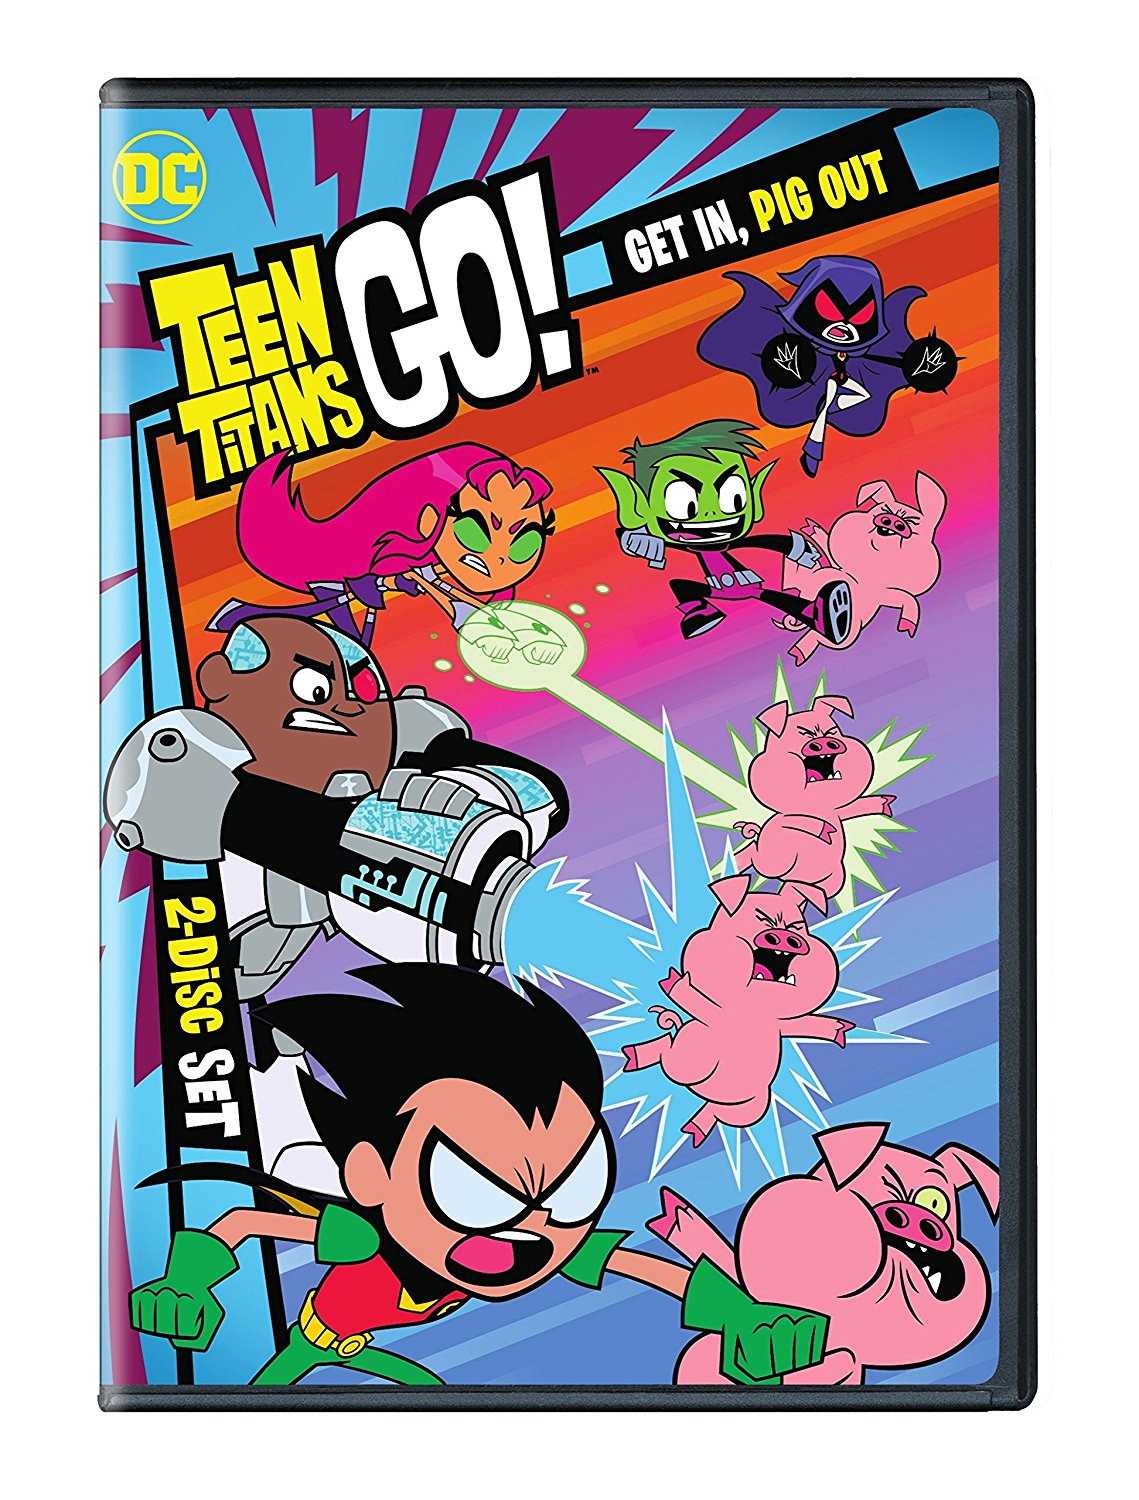 Teen Titans Go Get In Pig Out.jpg